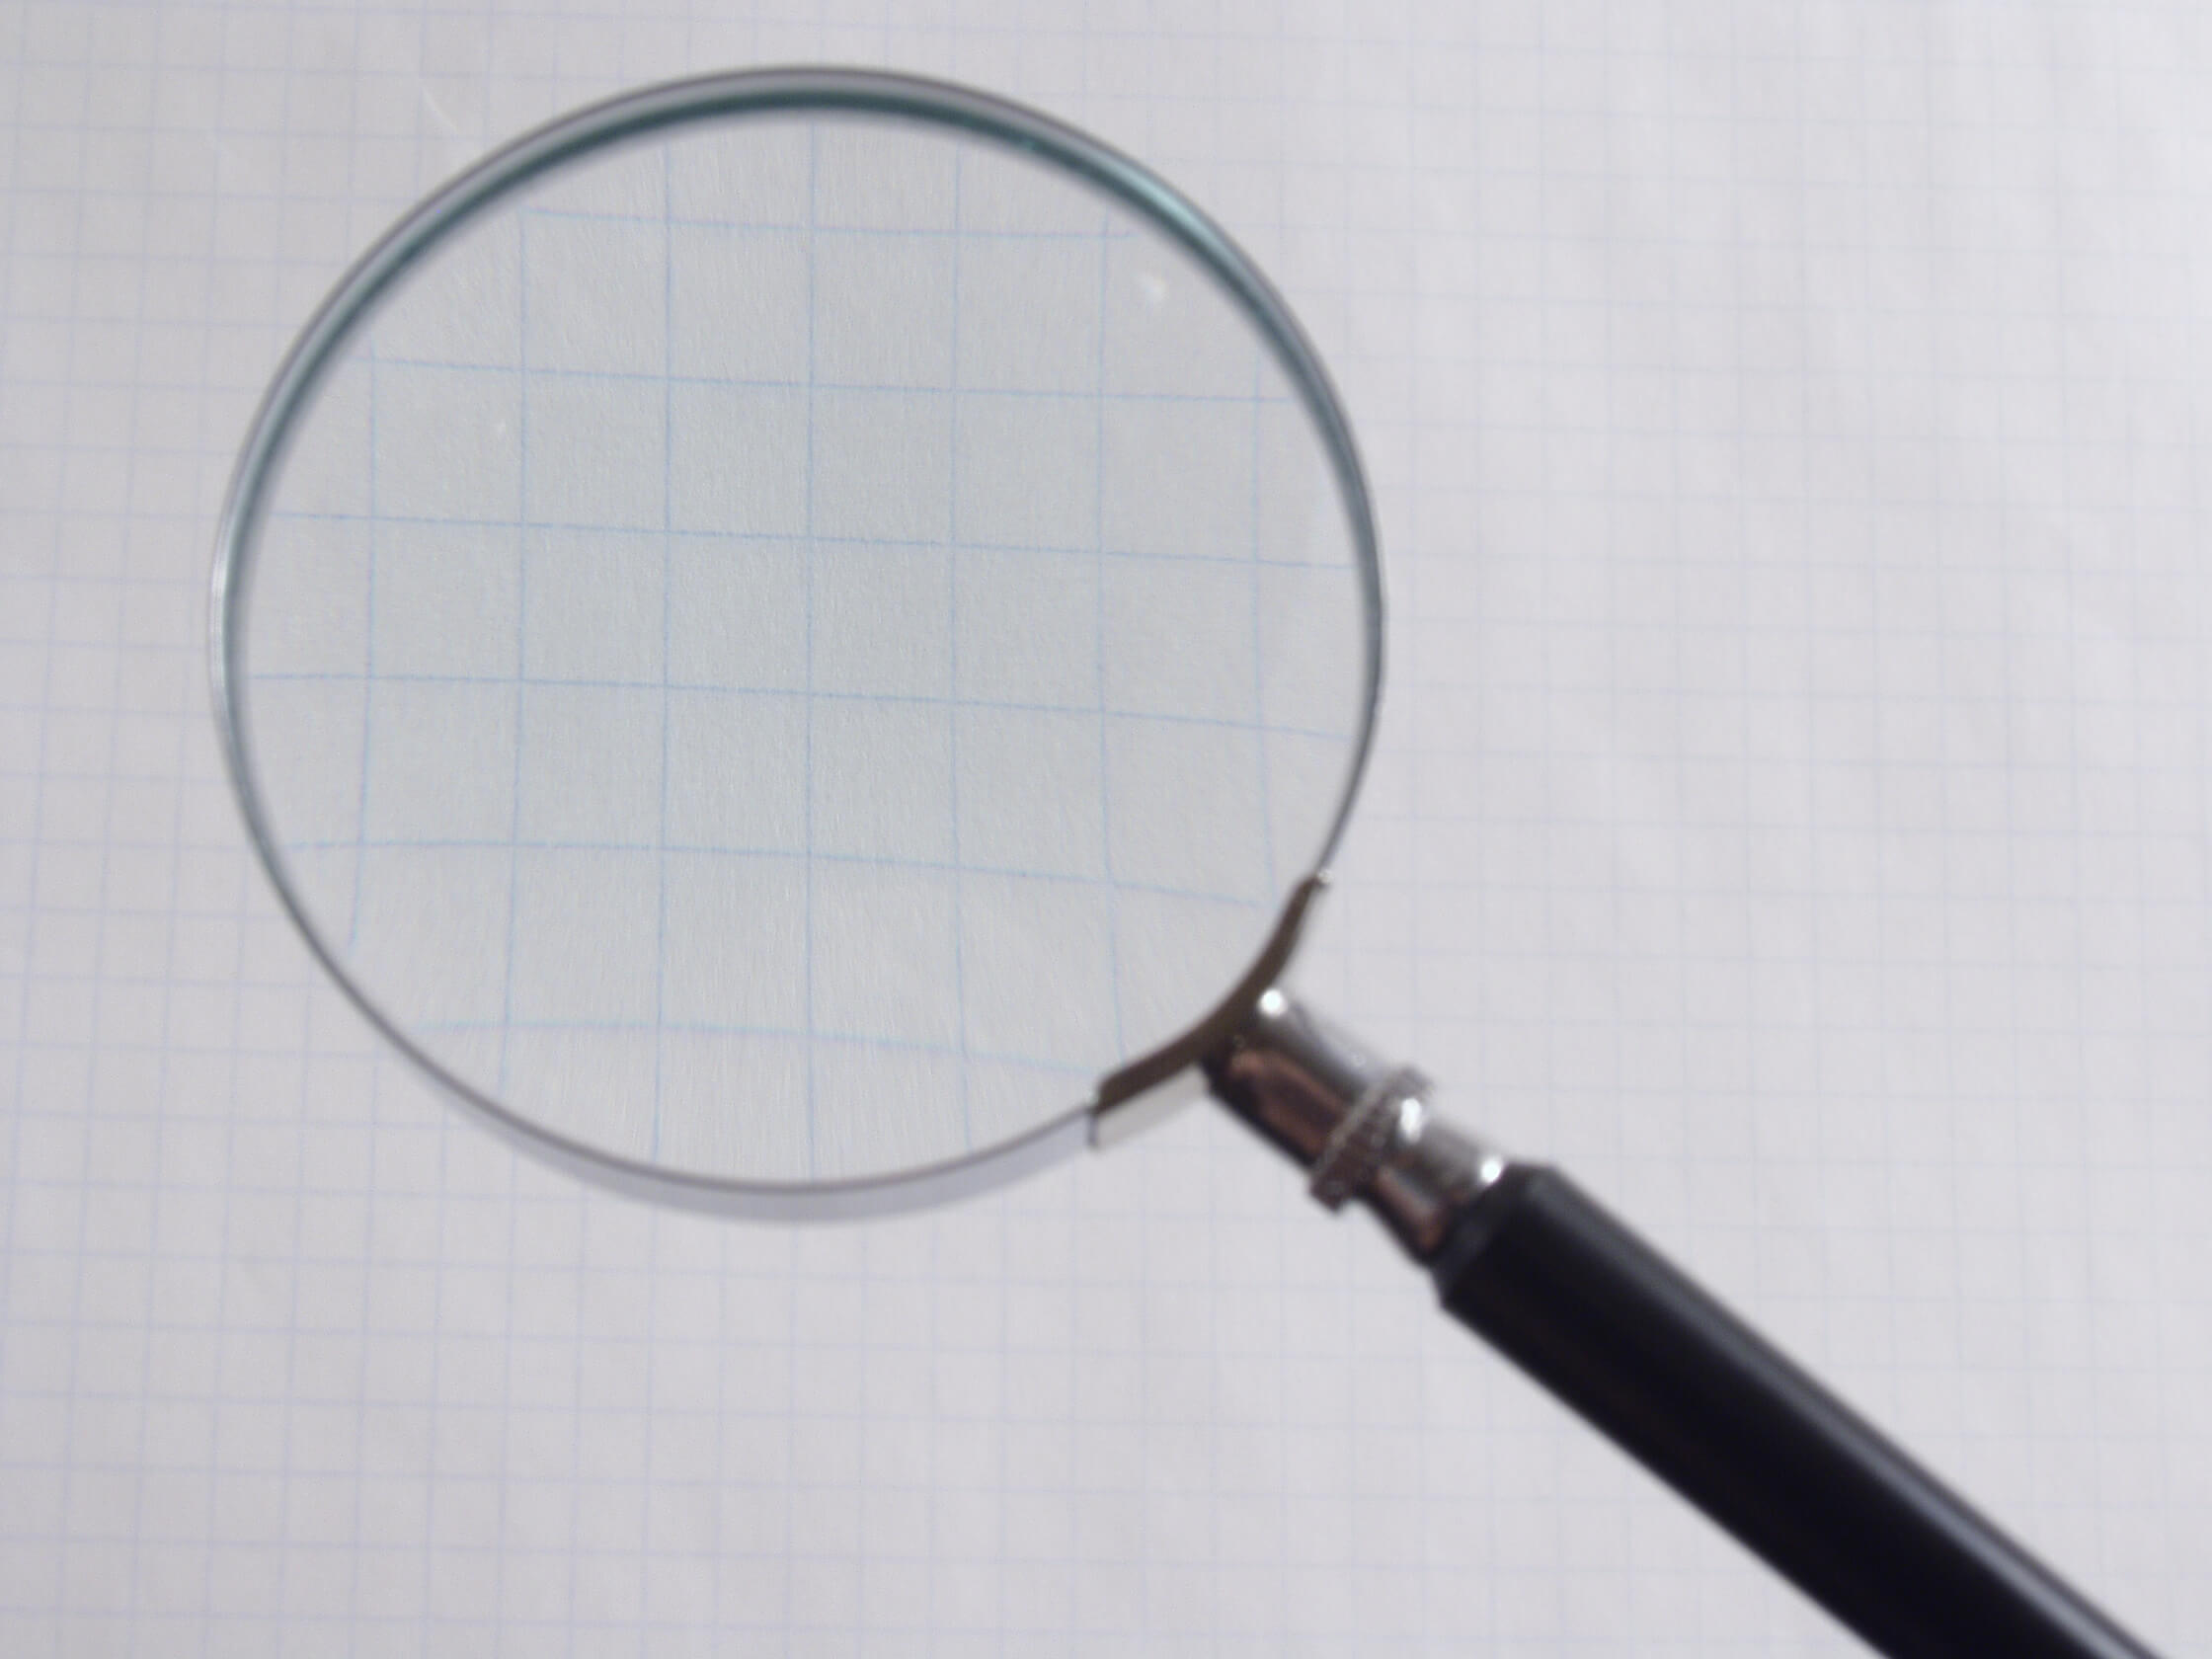 Large magnifying glass over grid paper